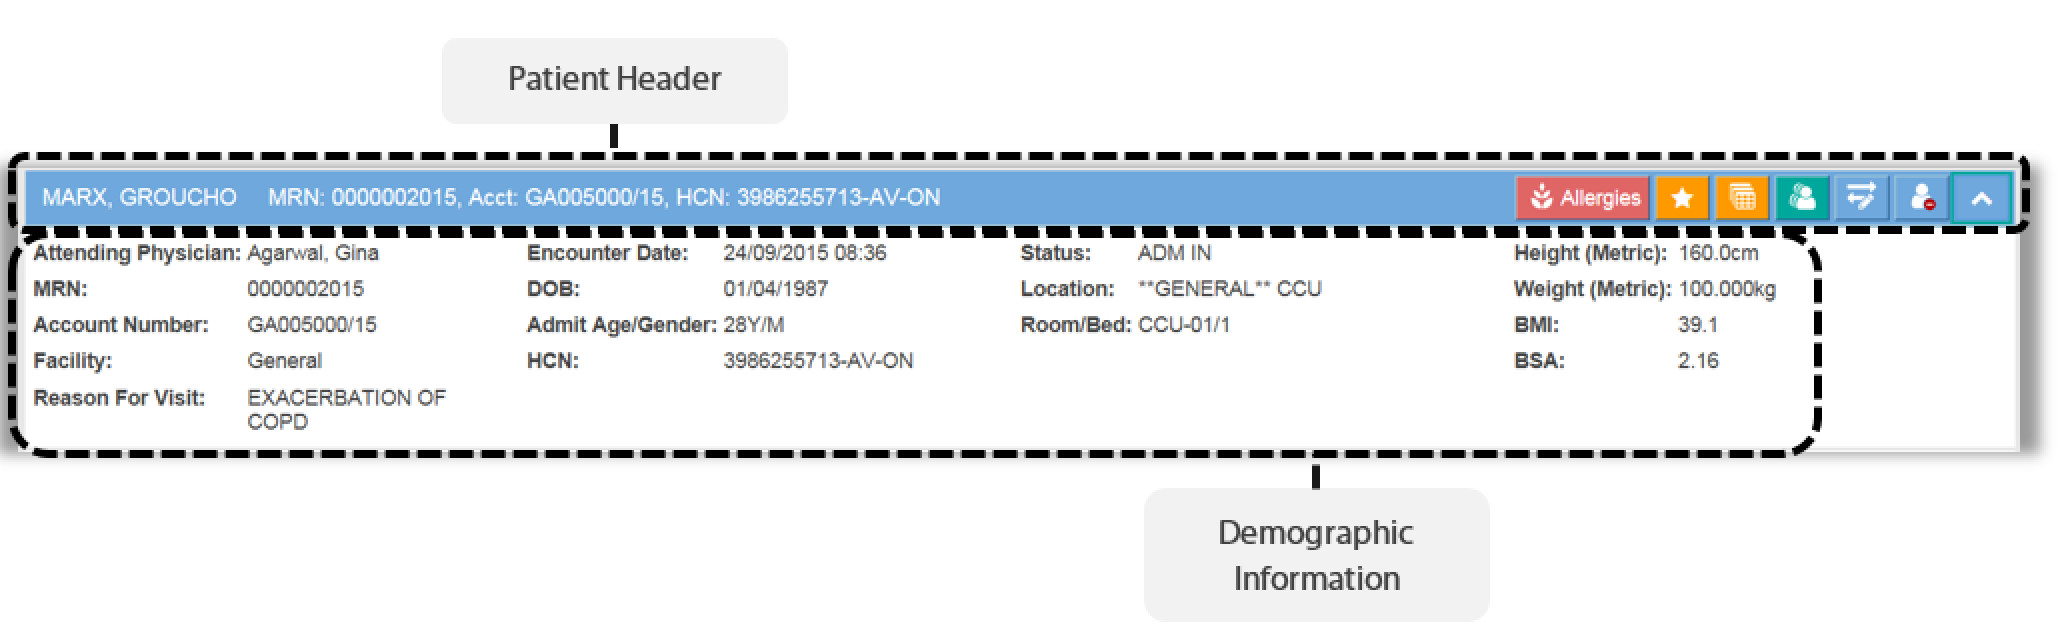 Image of the patient header and demographic information